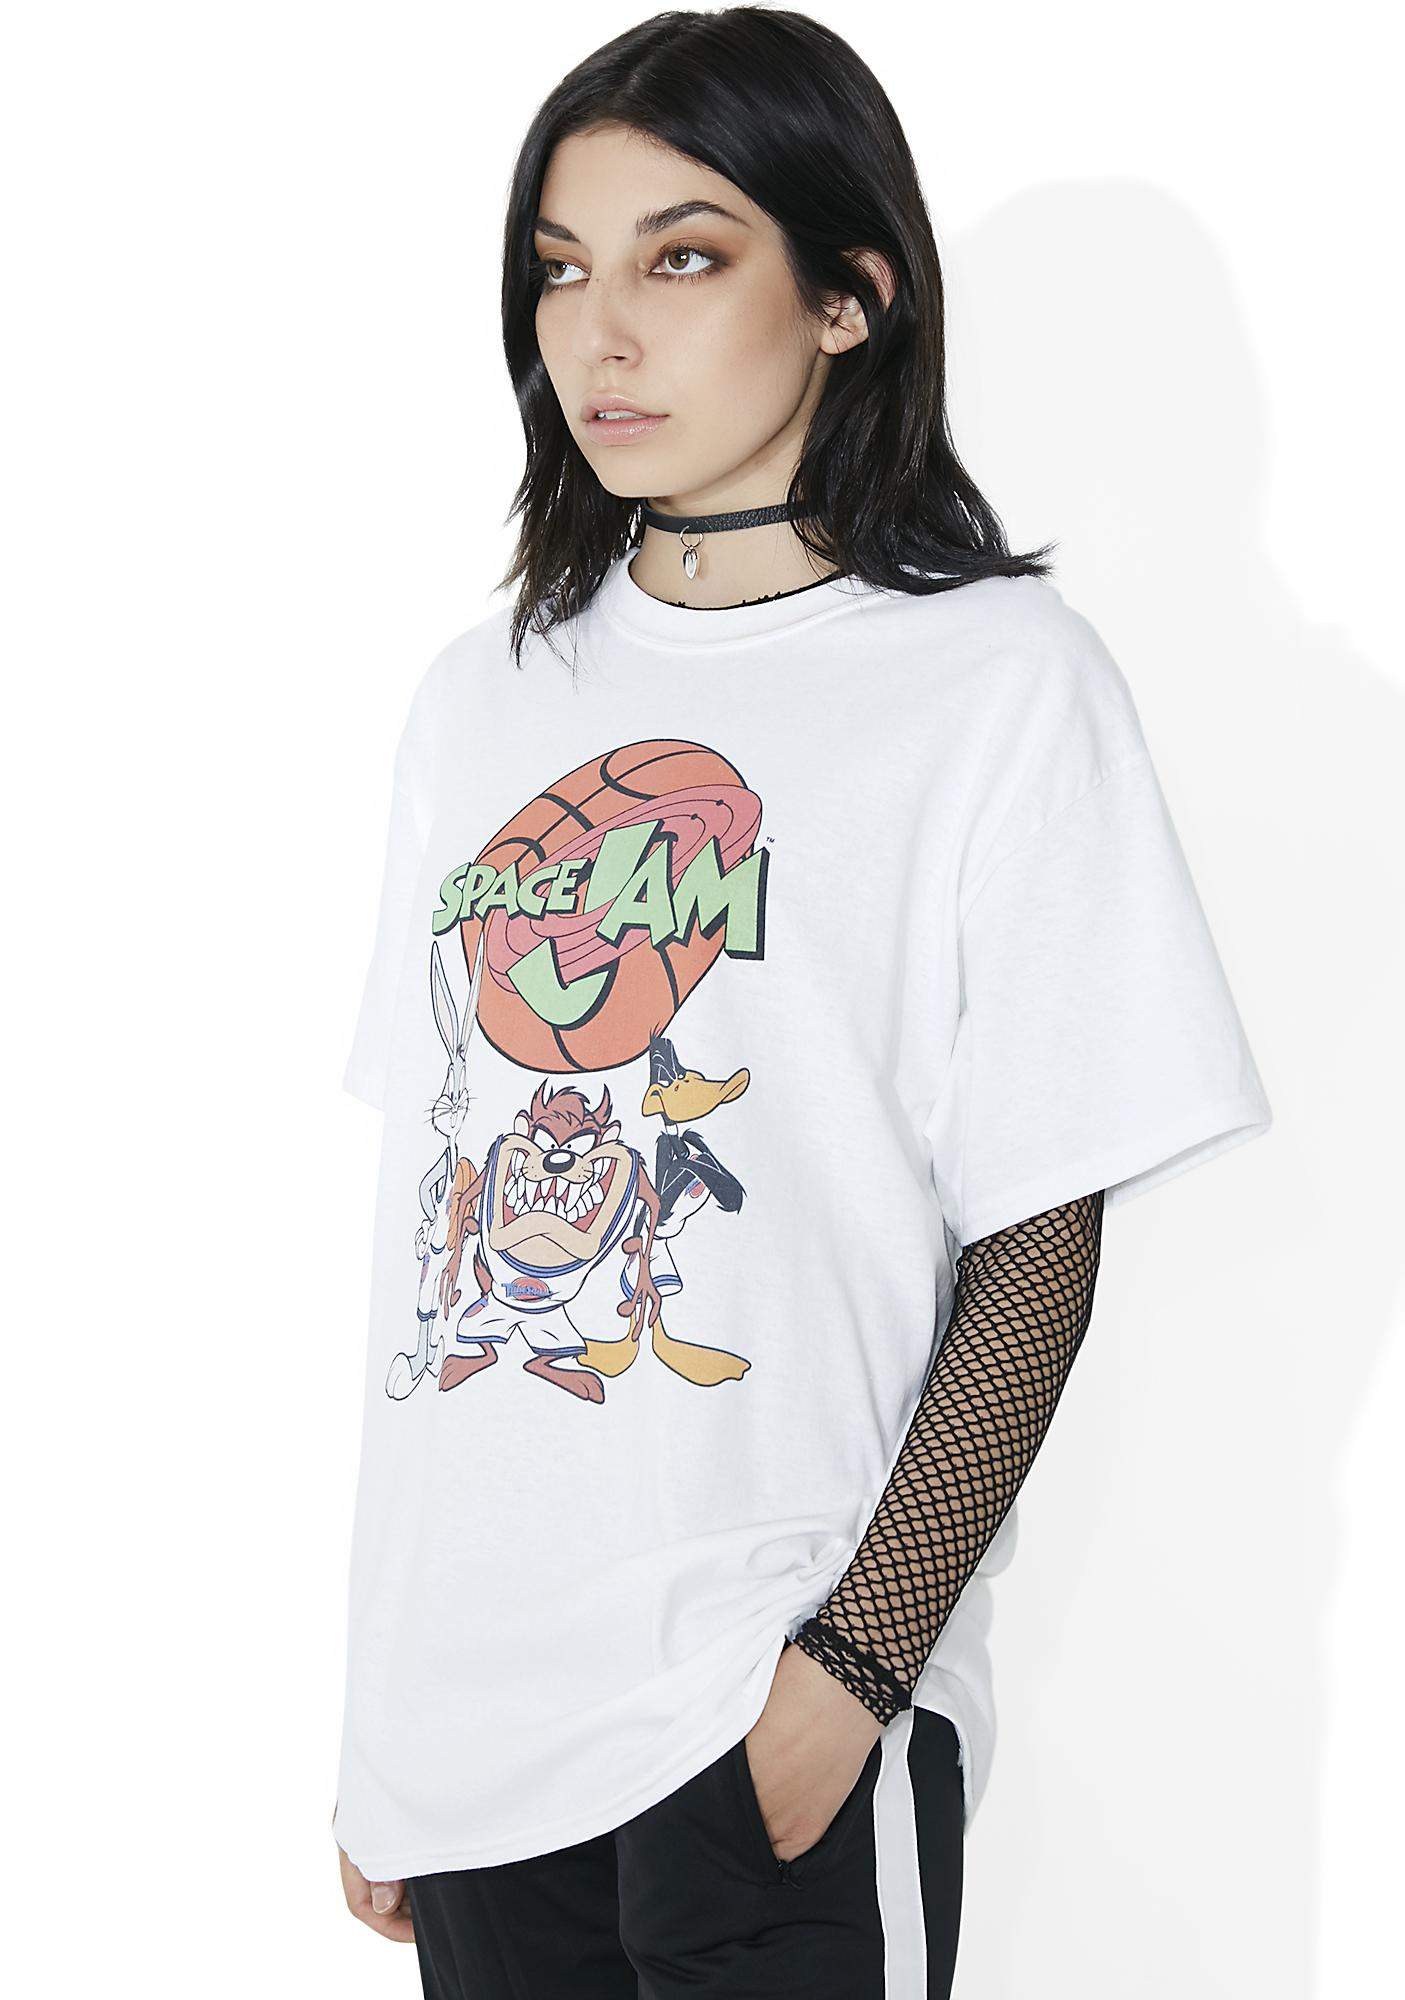 Tune Squad Graphic Tee